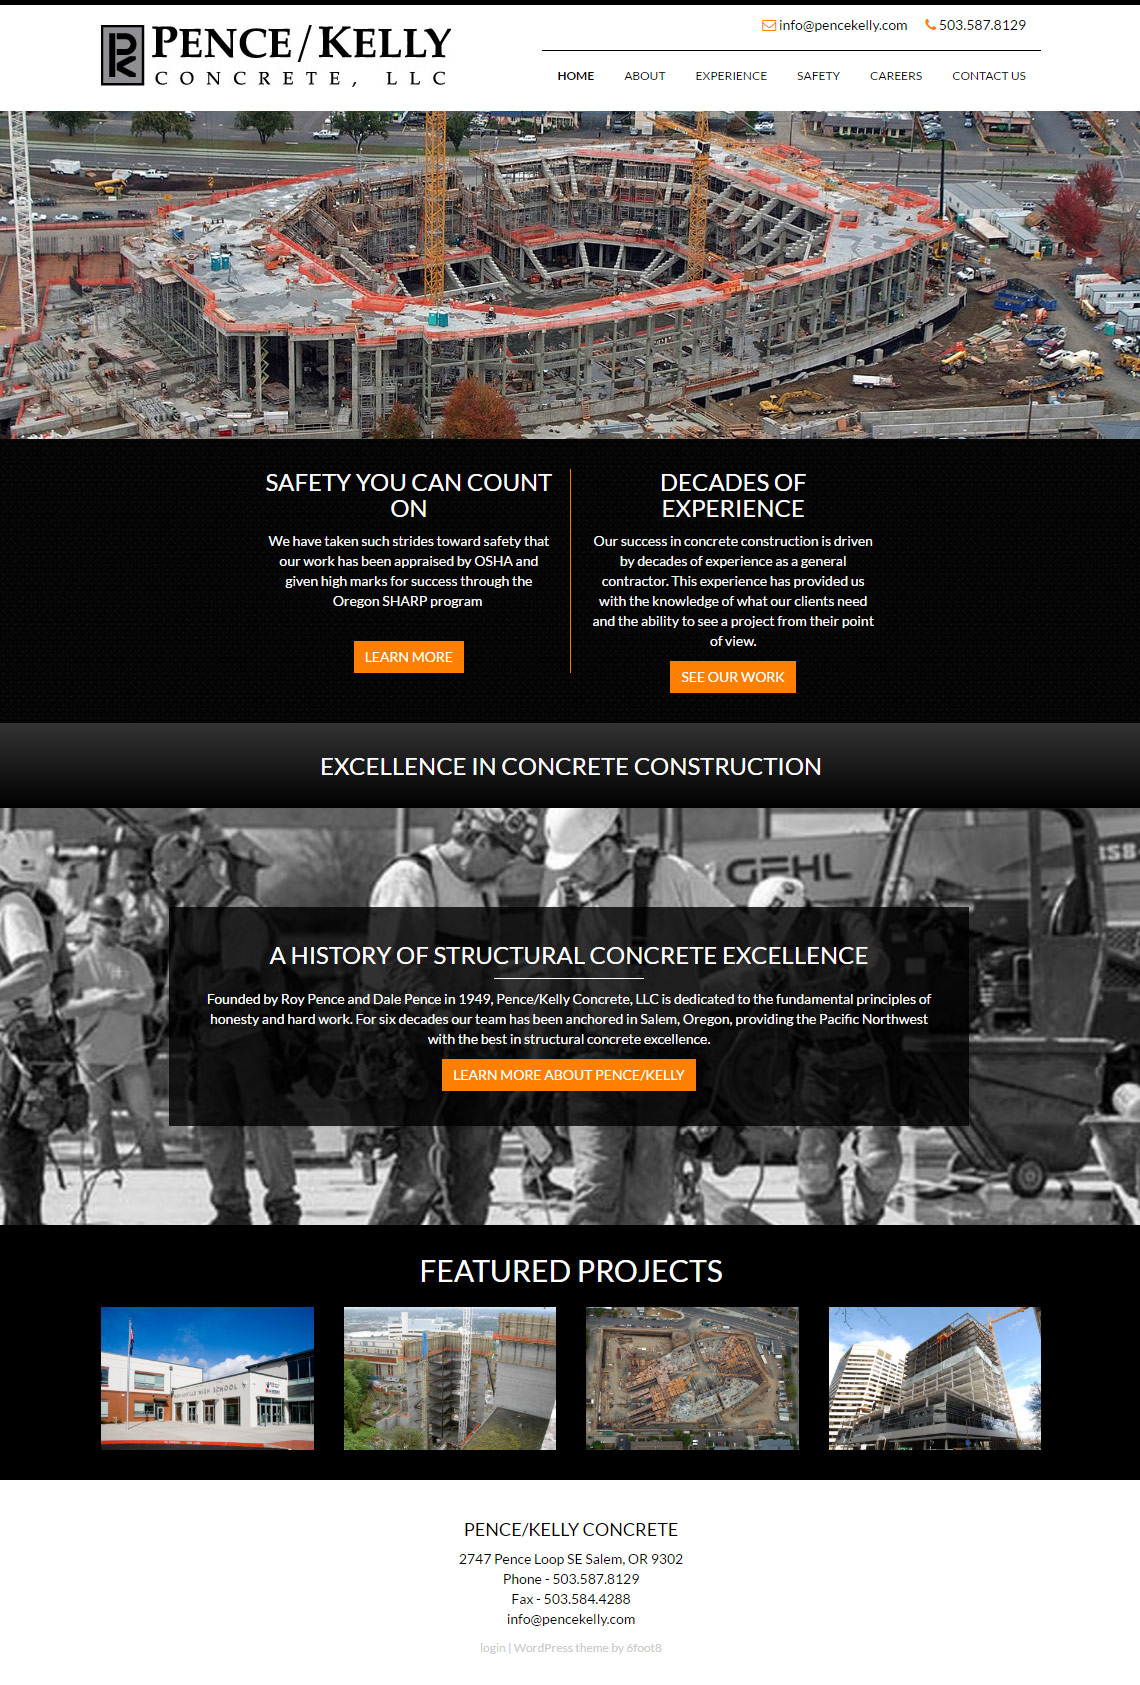 PenceKelly.com Website Design - Full Home Page